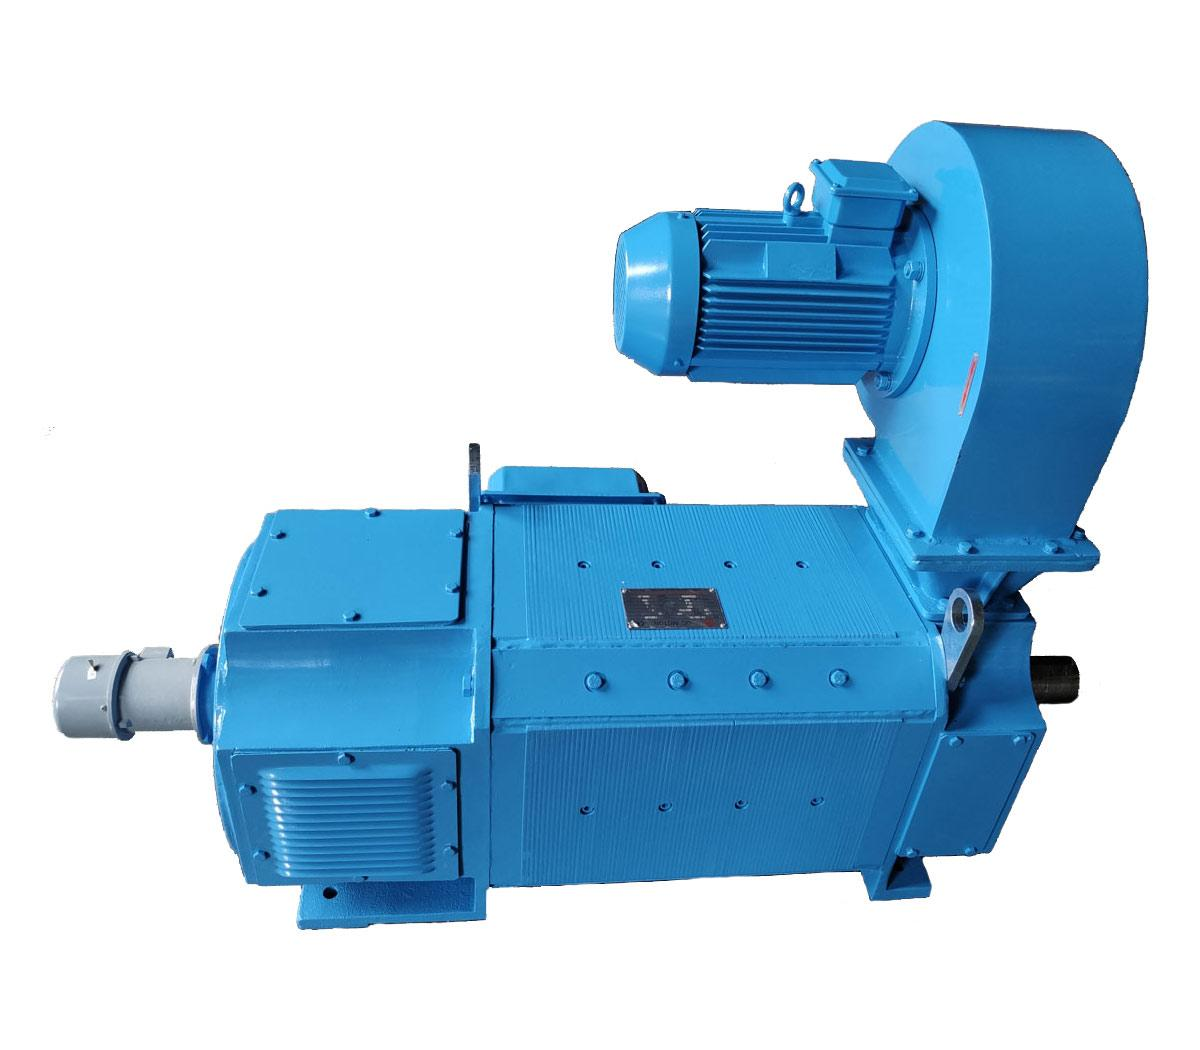 Z4 Series Electric DC Motor for Plastic Extruding Machine/ Extruder 2